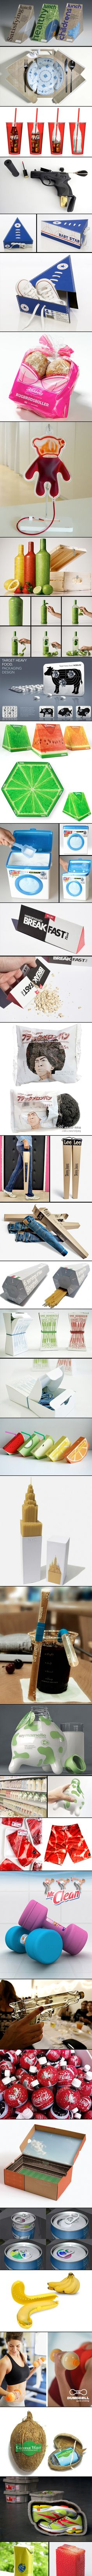 More Clever Packaging